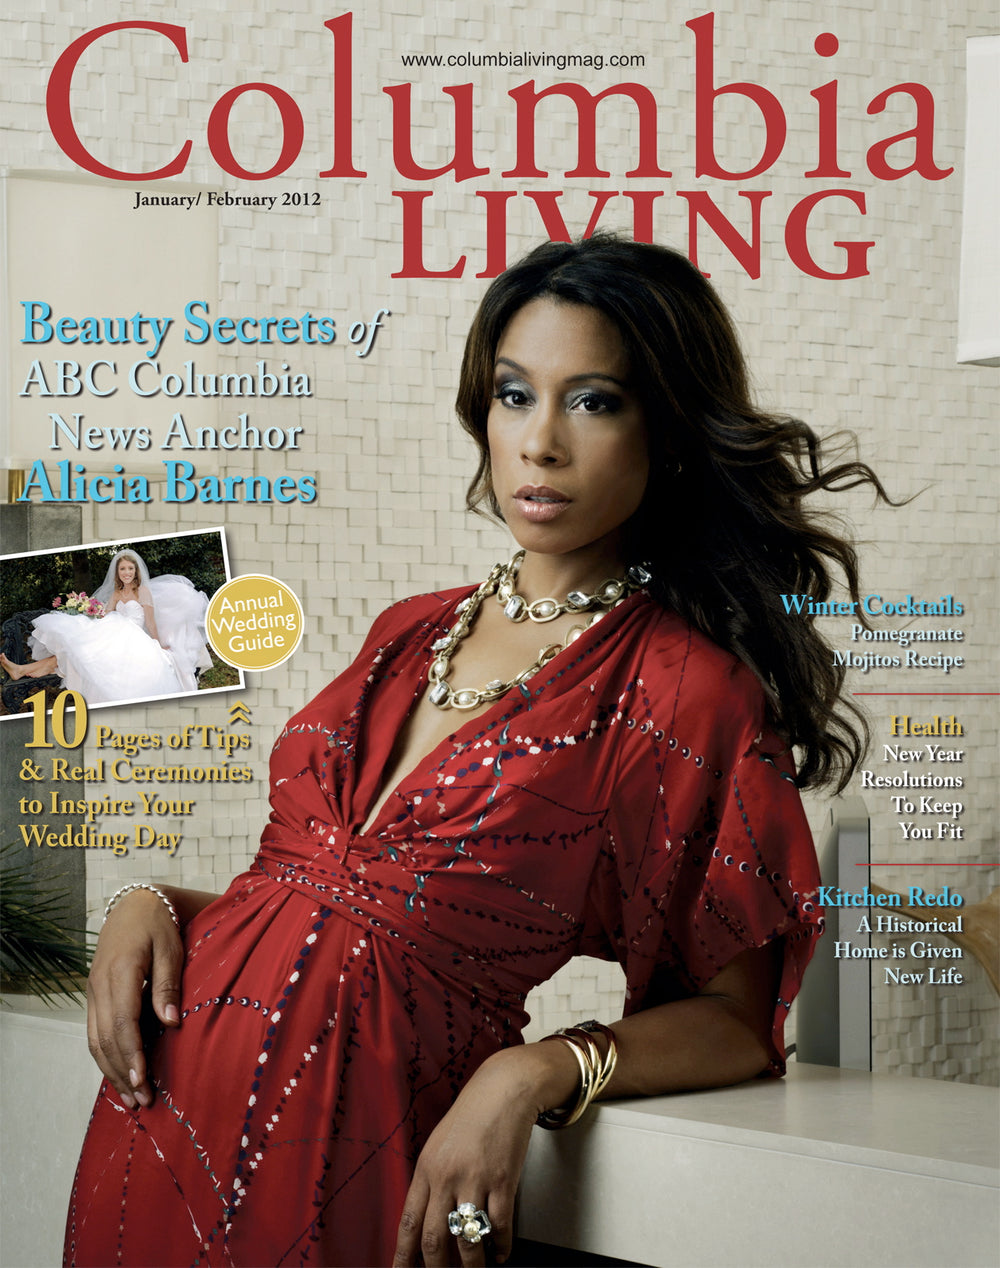 Columbia Living The Premier Lifestyle Magazine of Columbia South Carolina  Jan/Feb 2012